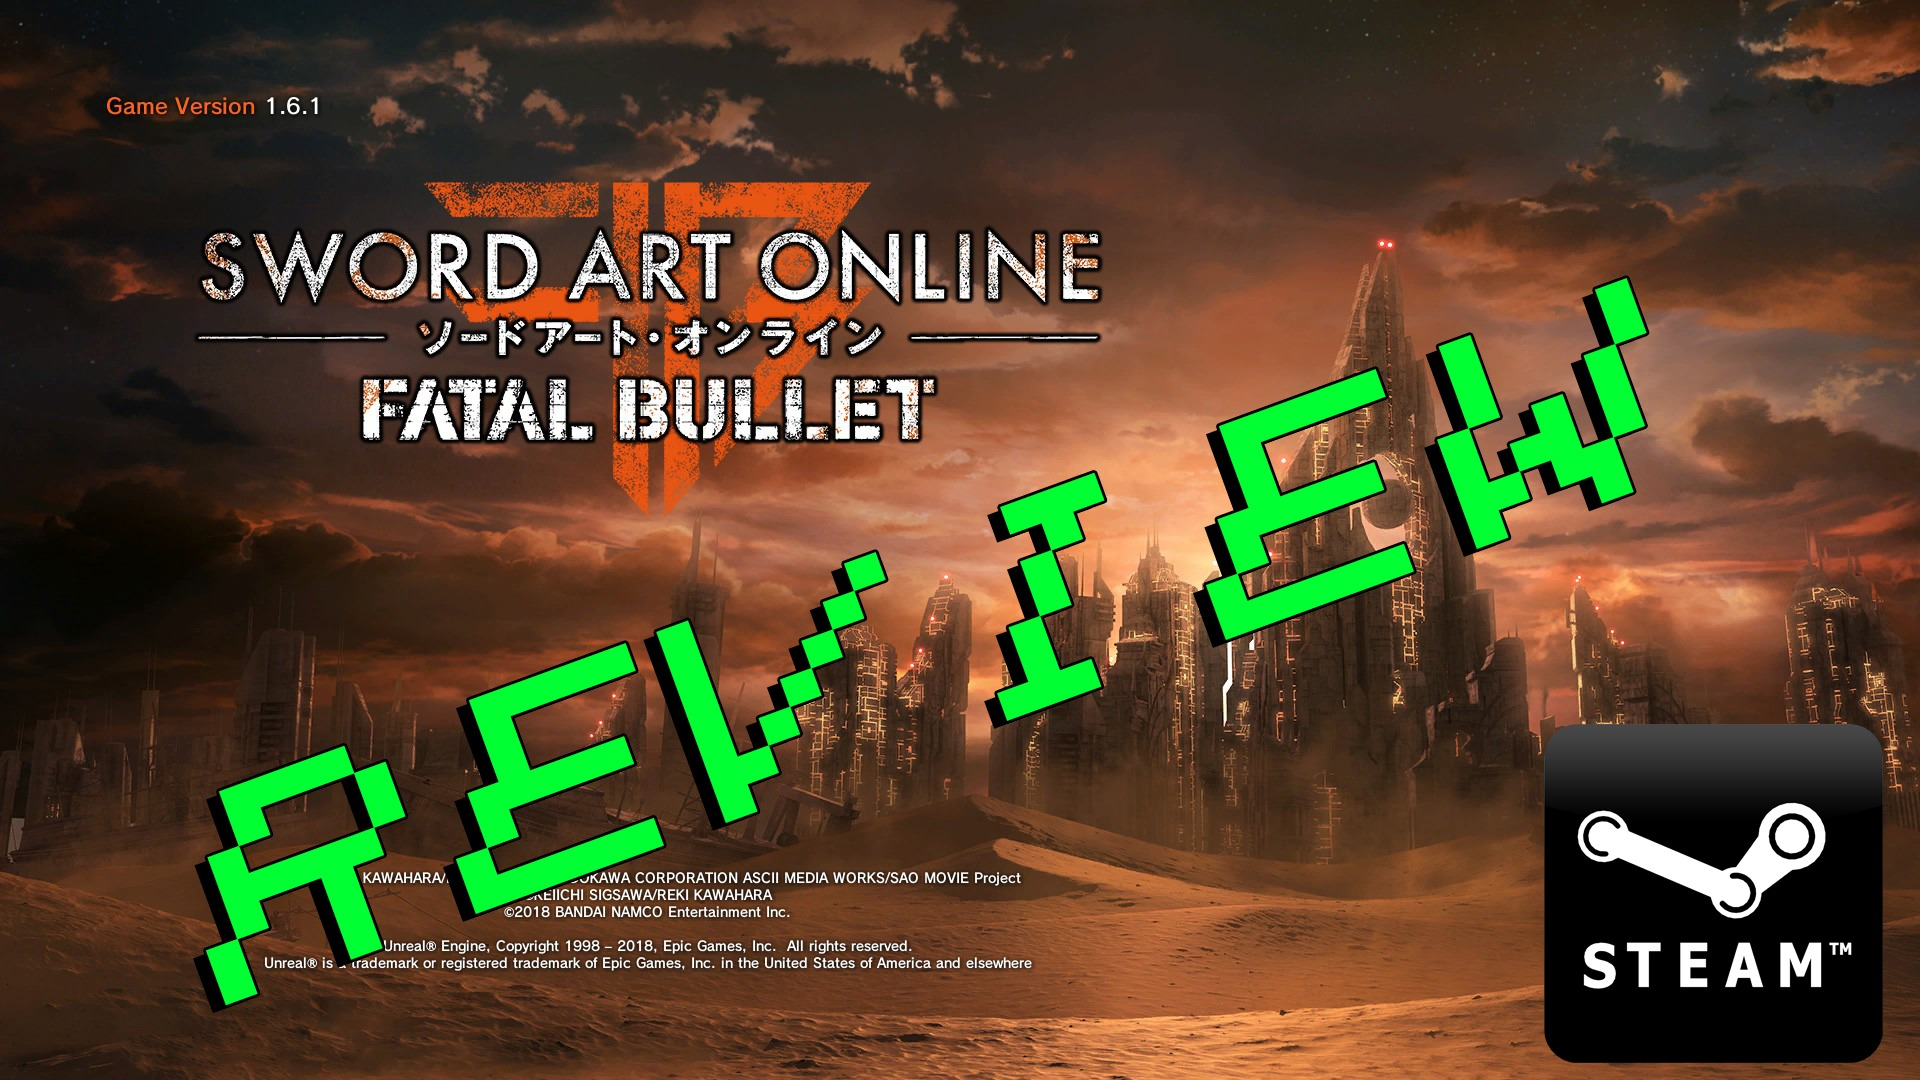 Fatal bullet Steam Review